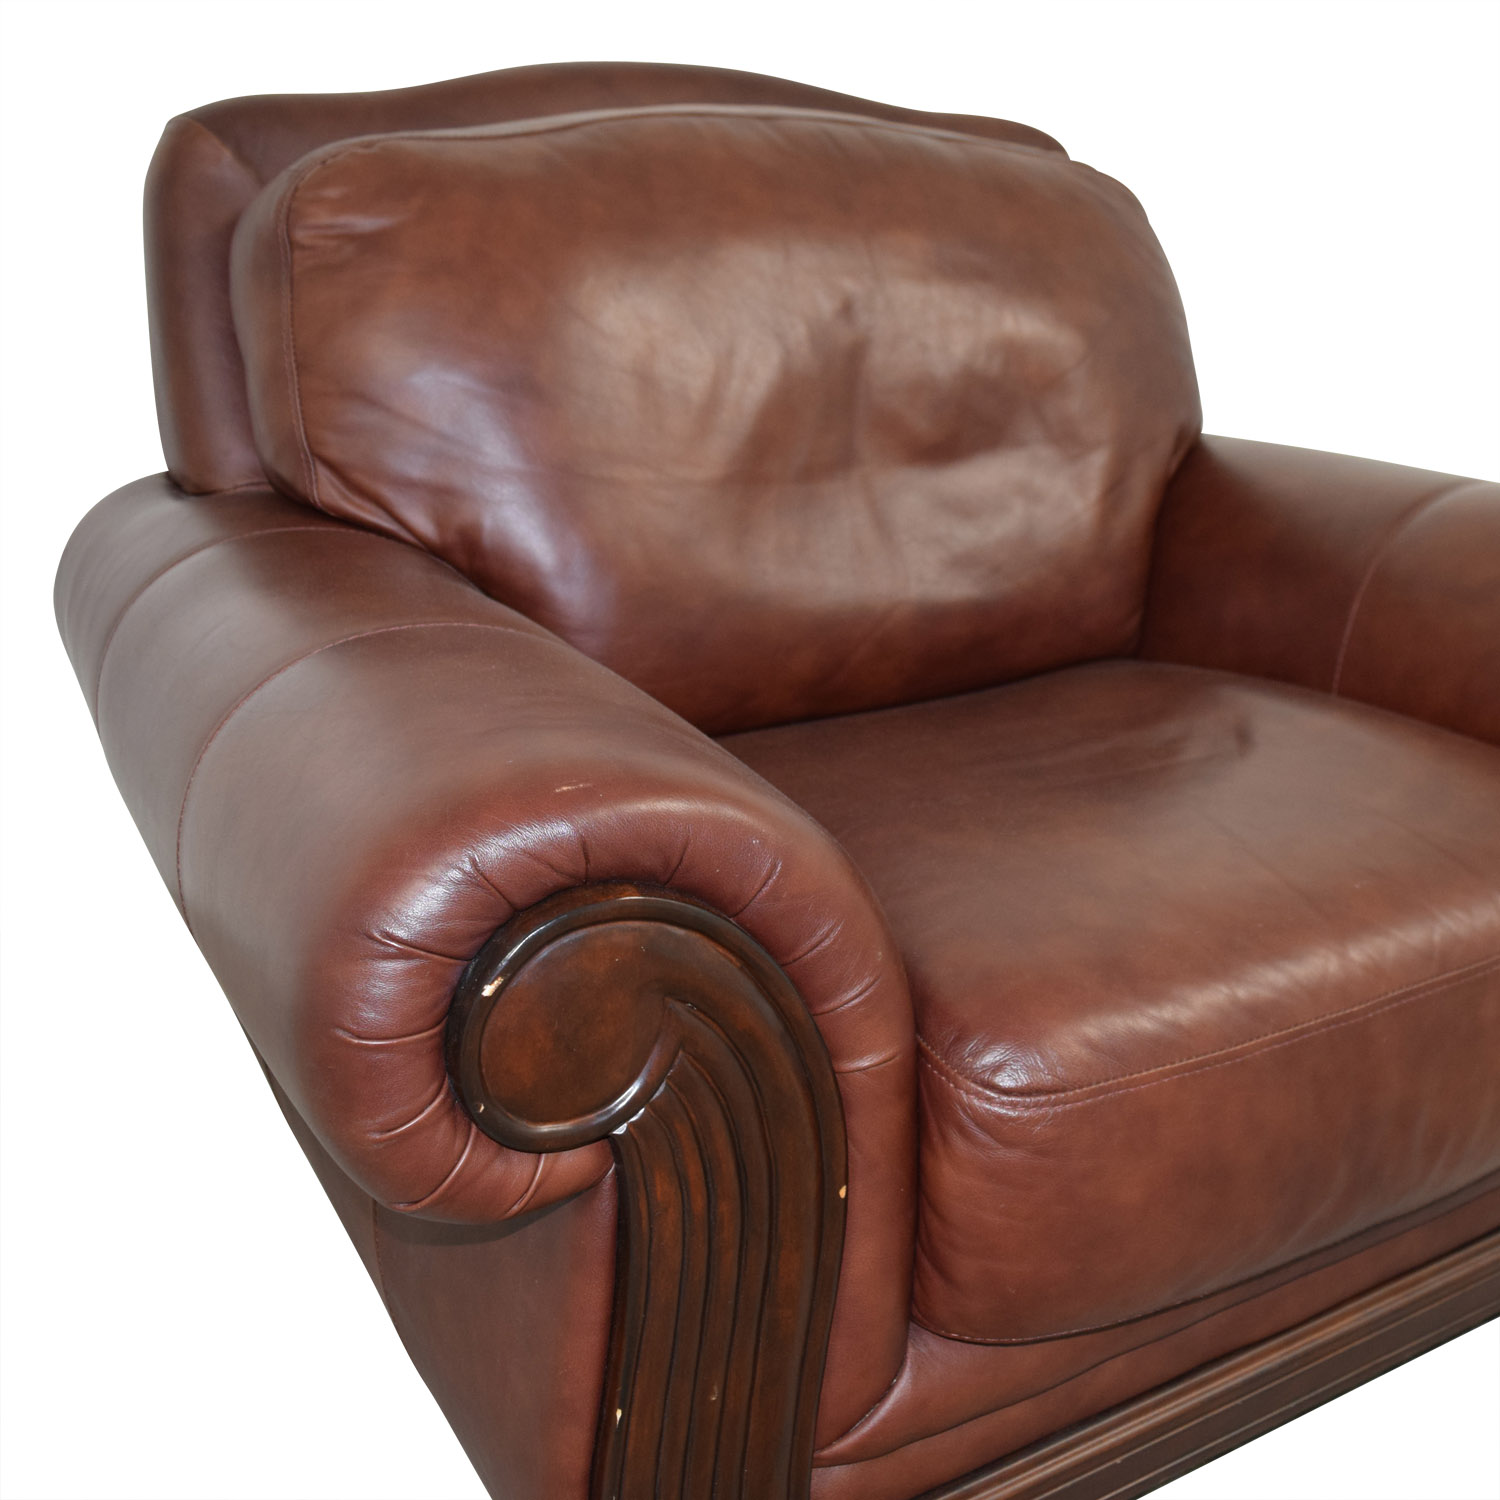 accent chairs to go with brown leather sofa modular sectional furniture 69 off rooms